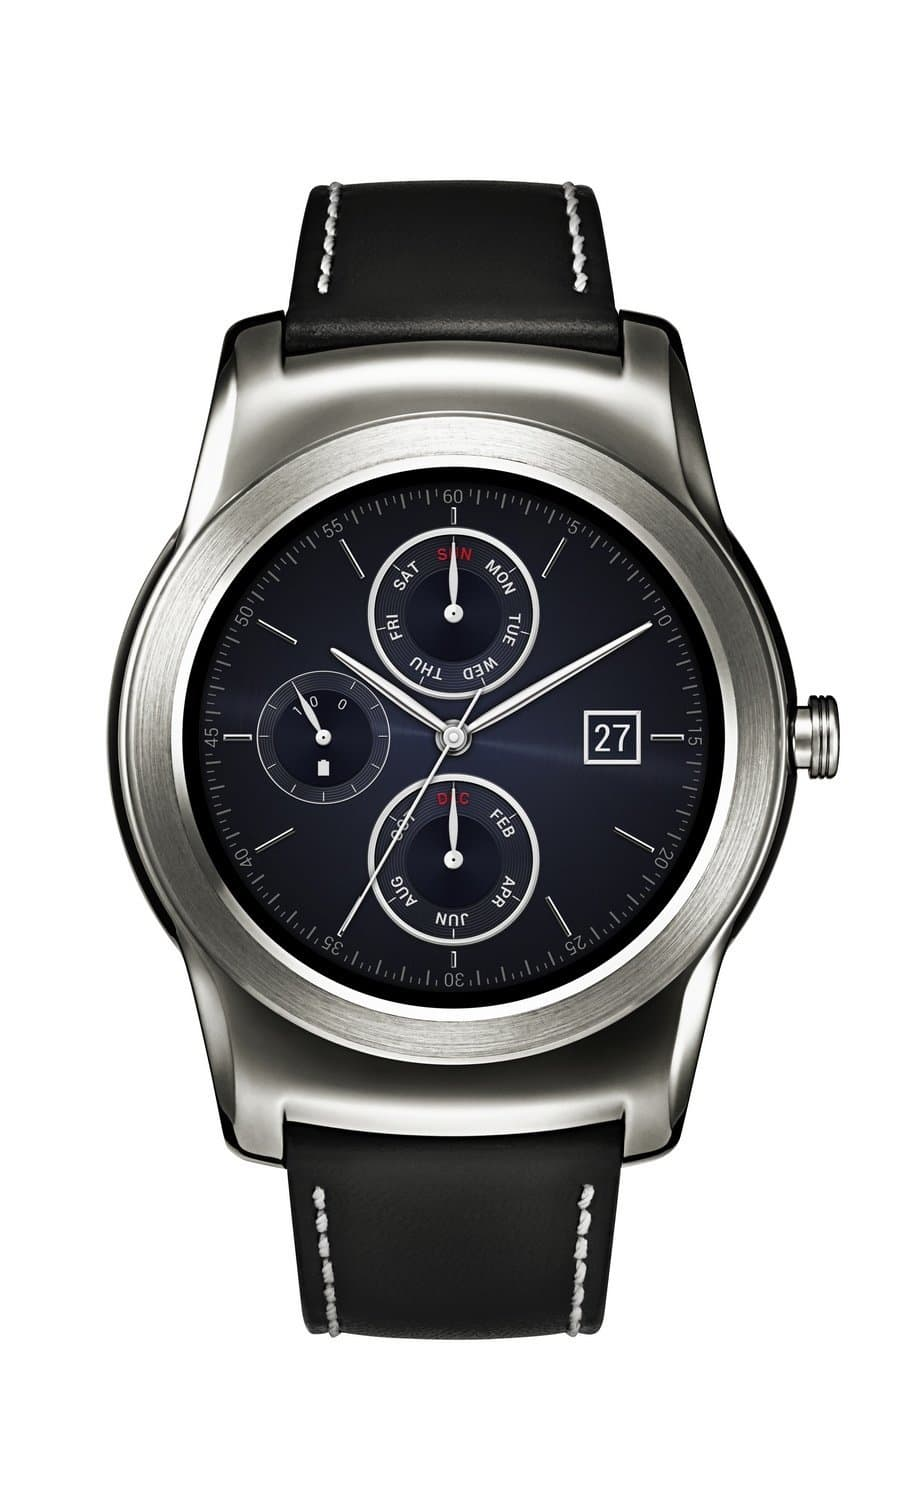 LG Watch Urbane Android Smartwatch (Silver)  $100 + Free Shipping